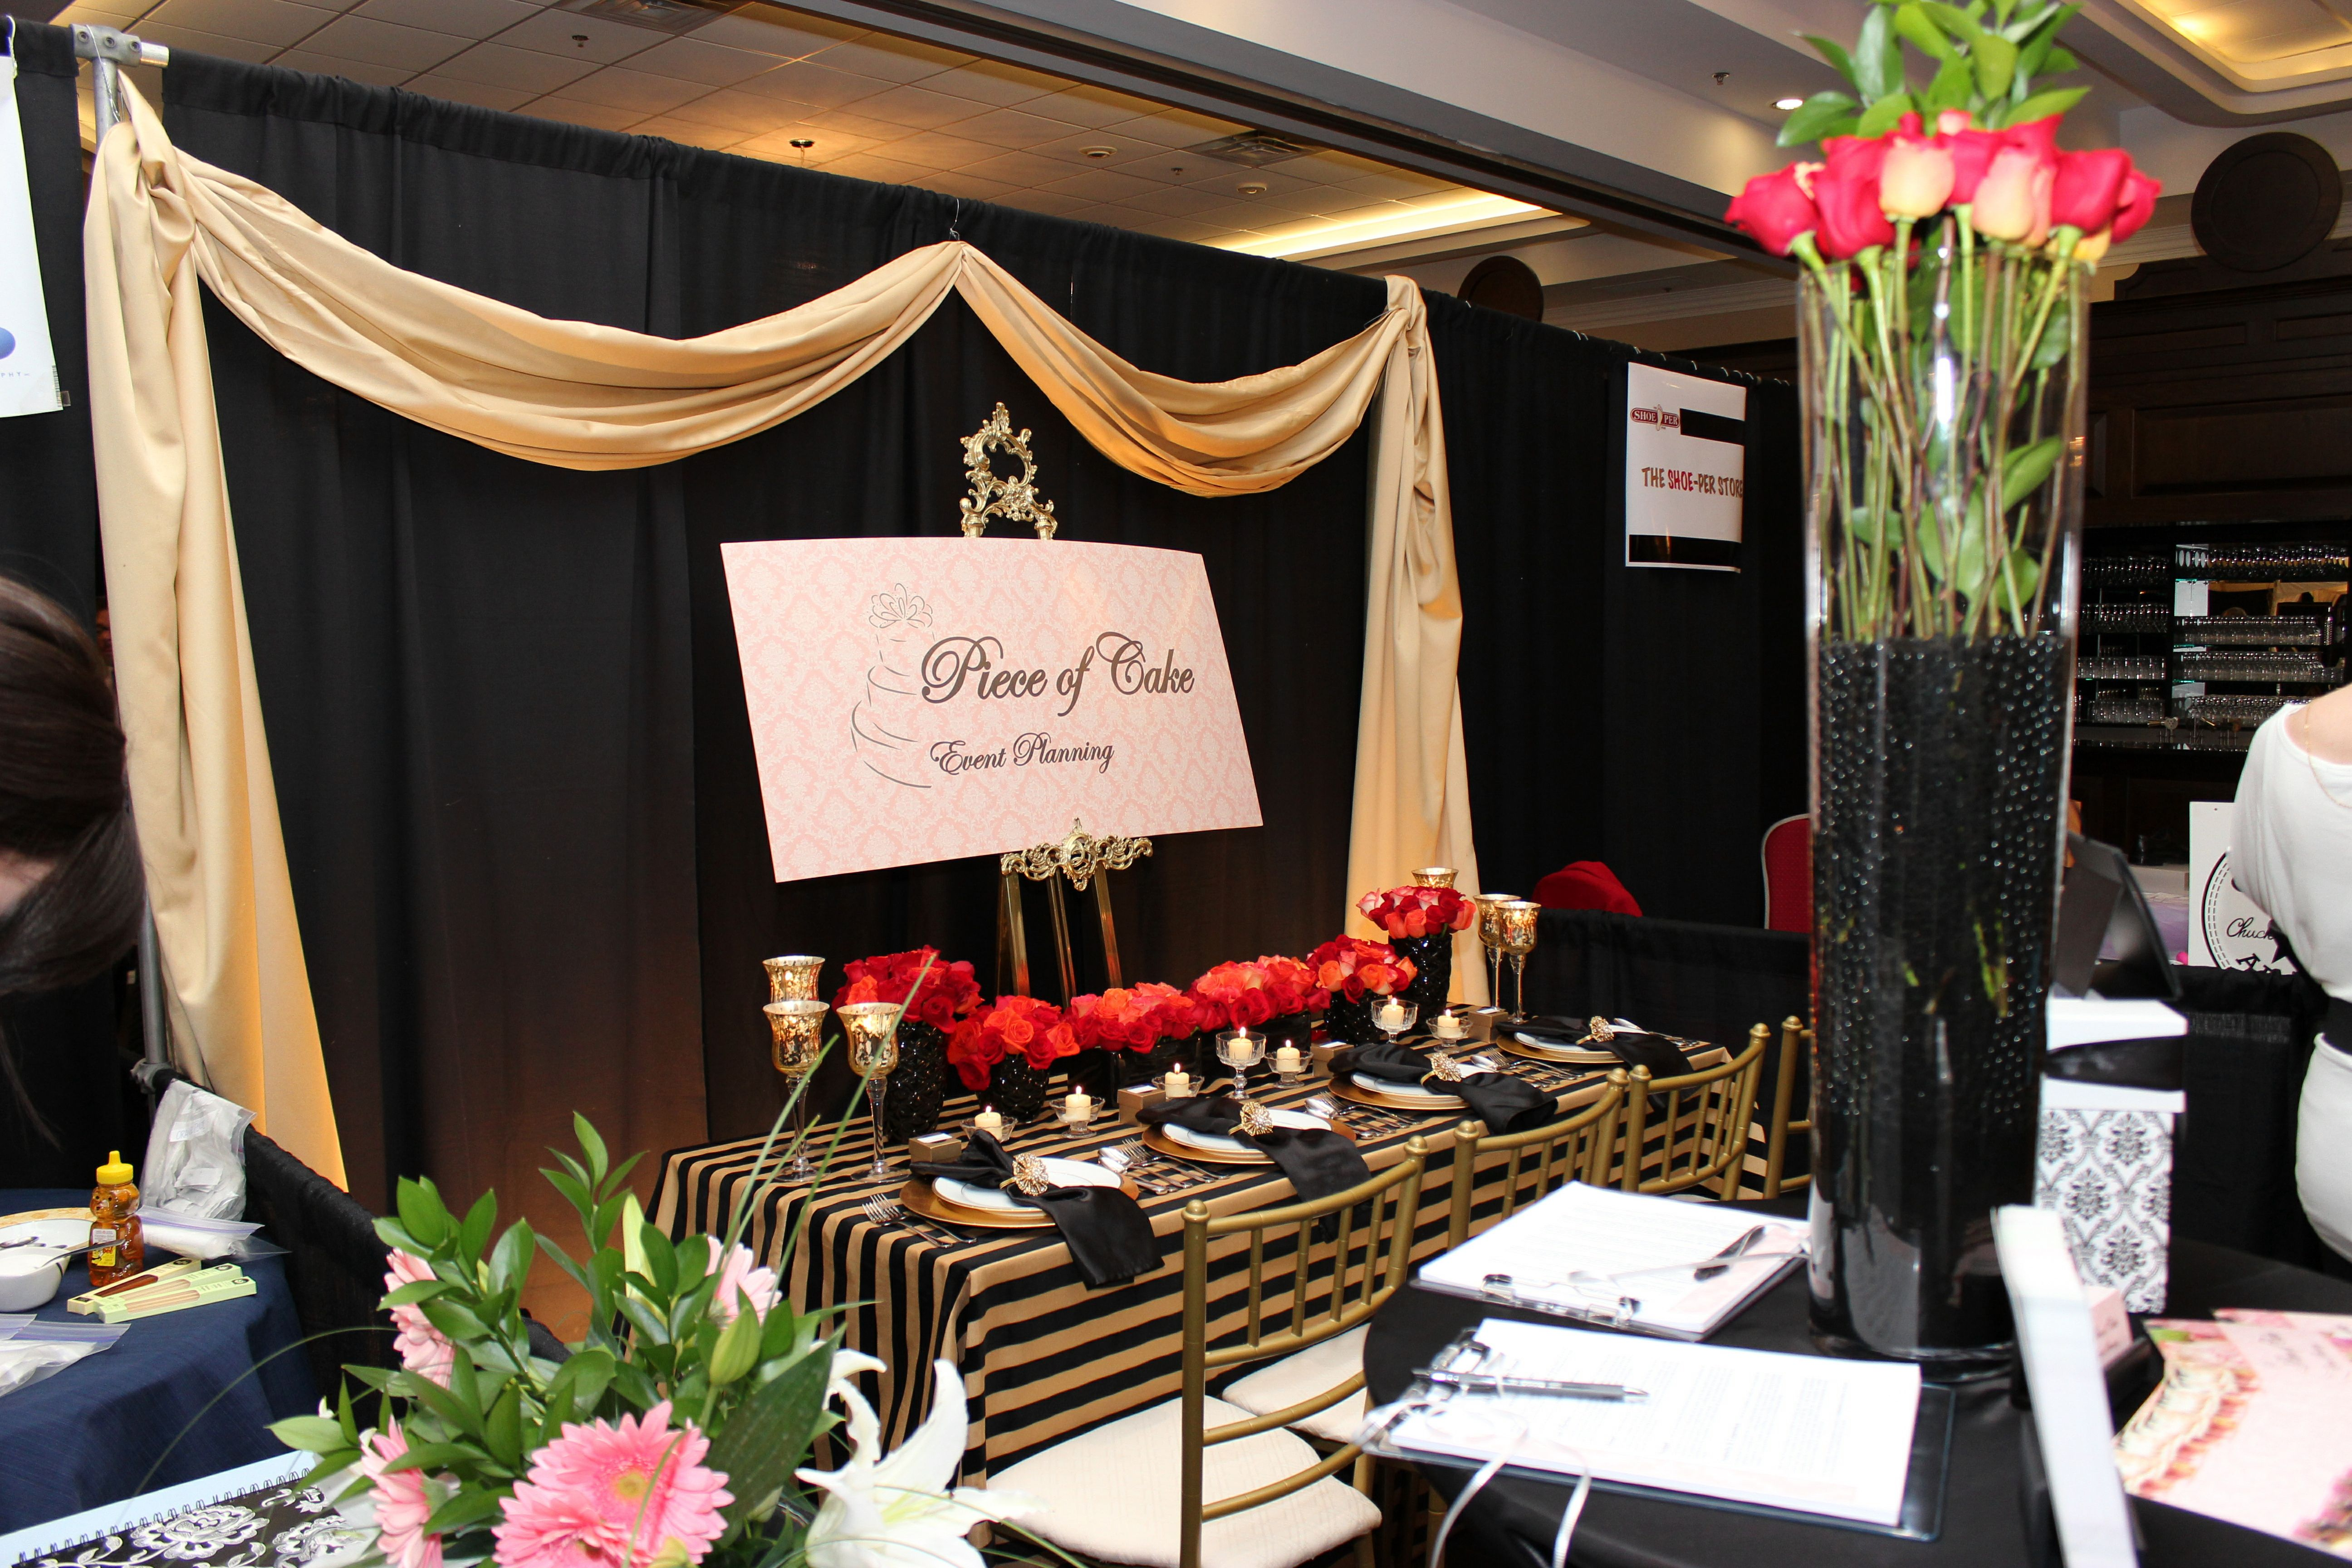 Piece Of Cake Event Planning Trade Show Booth At The Royal. Wedding Catering El Paso Tx. Wedding Clothes.com. Outdoor Wedding Buffet. Wedding Decorations Ideas Pictures. Wedding Reception Music Sequence. Wedding Planners Anchorage Ak. Wedding Programs Examples Simple. China Website For Wedding Dresses